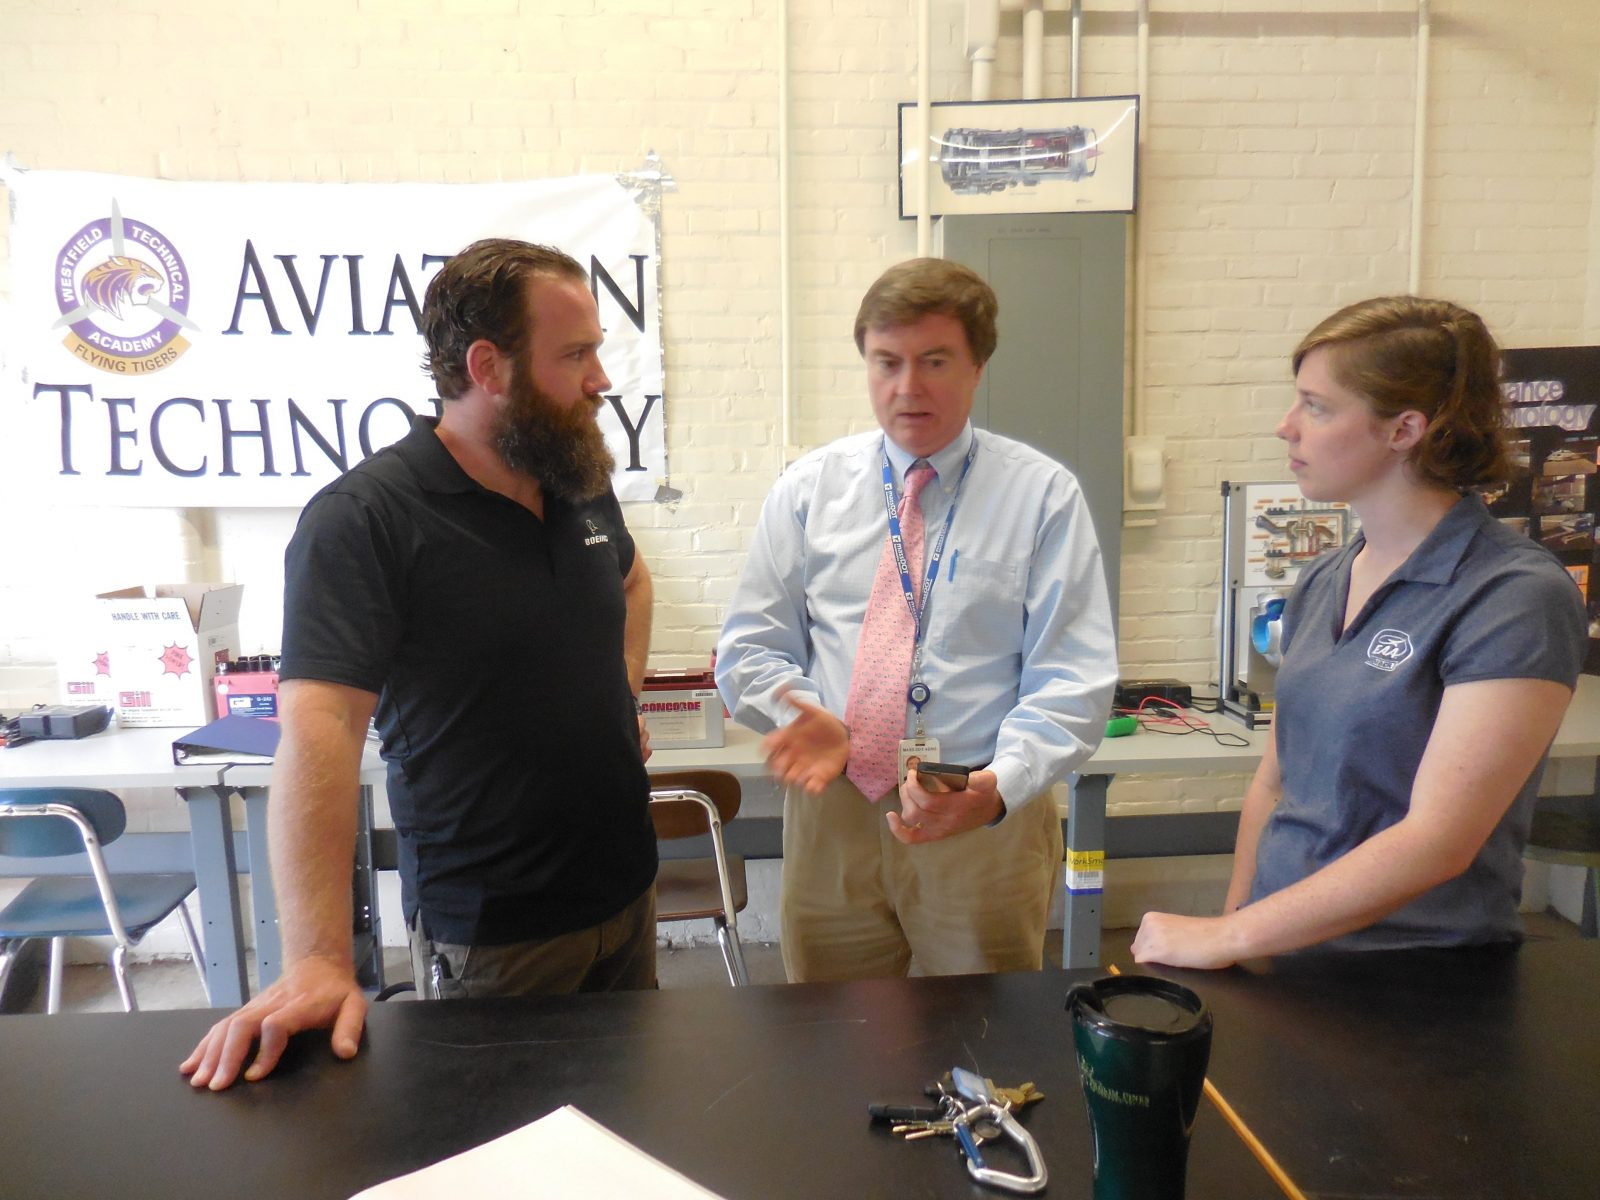 Westfield Tech Aviation students will have presence at International Air Show